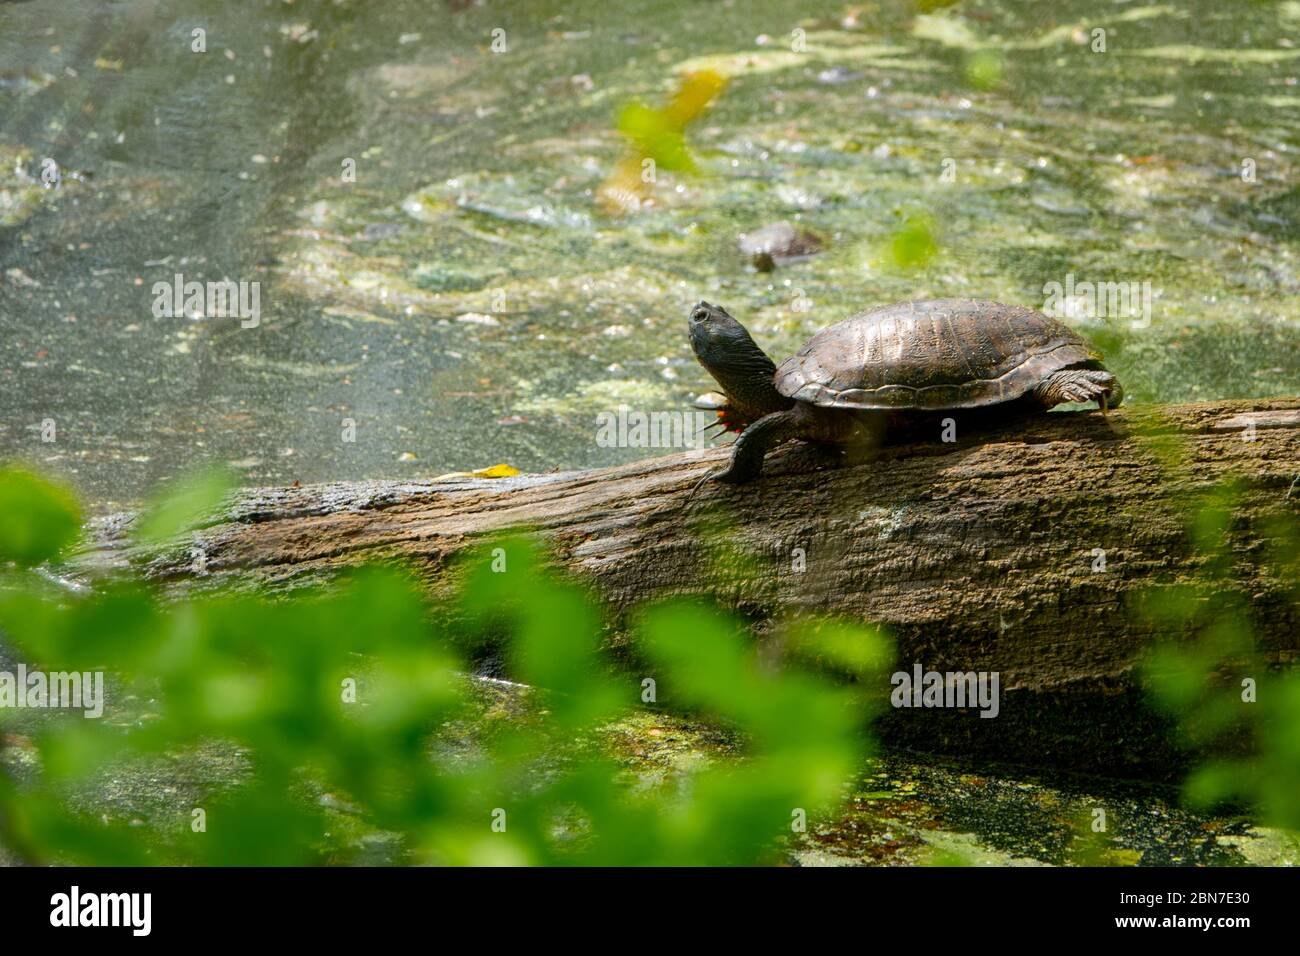 usa-maryland-poolesville-mckee-beshers-wildlife-management-area-turtles-on-a-log-covered-in-duckweed-2BN7E30.jpg